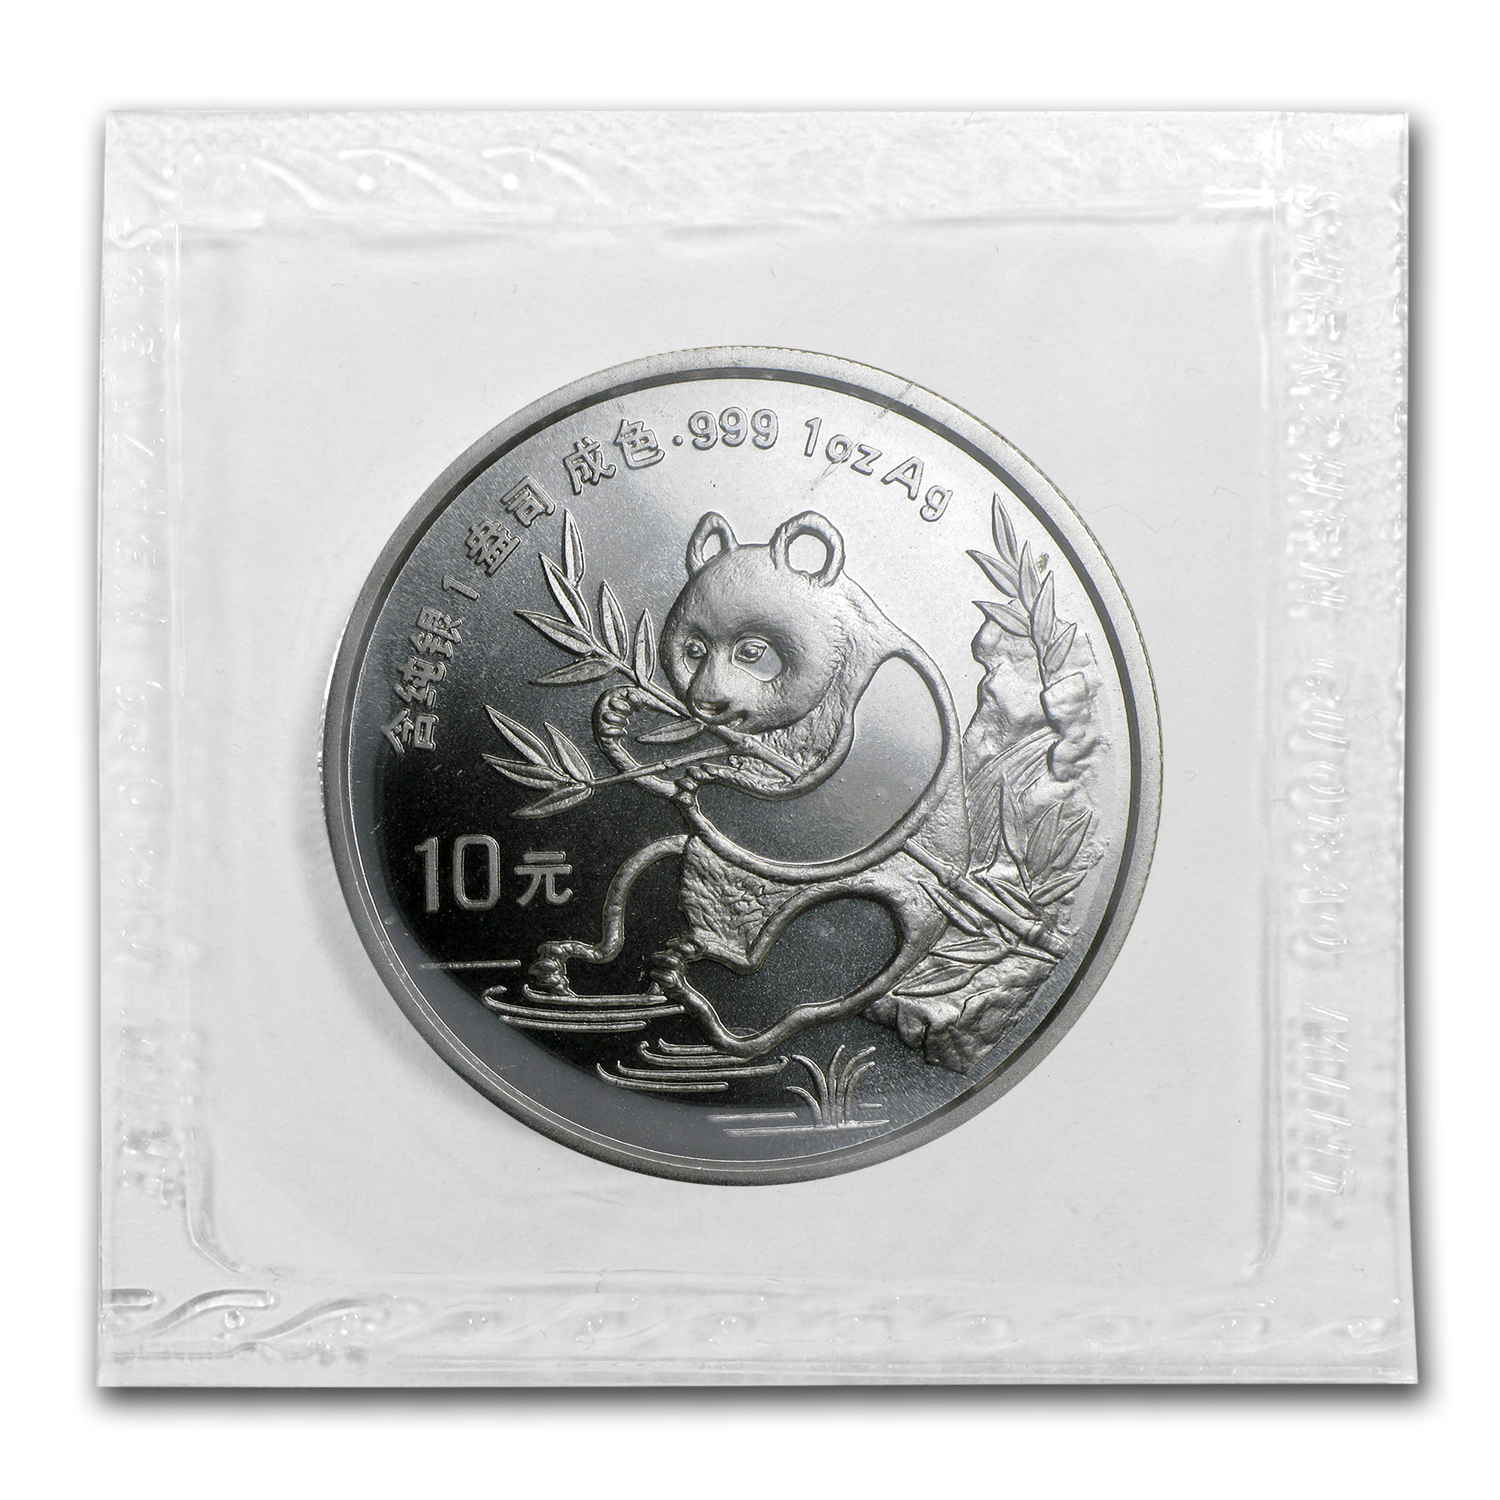 1991 1 oz Silver Chinese Panda - (Sealed) Small Date